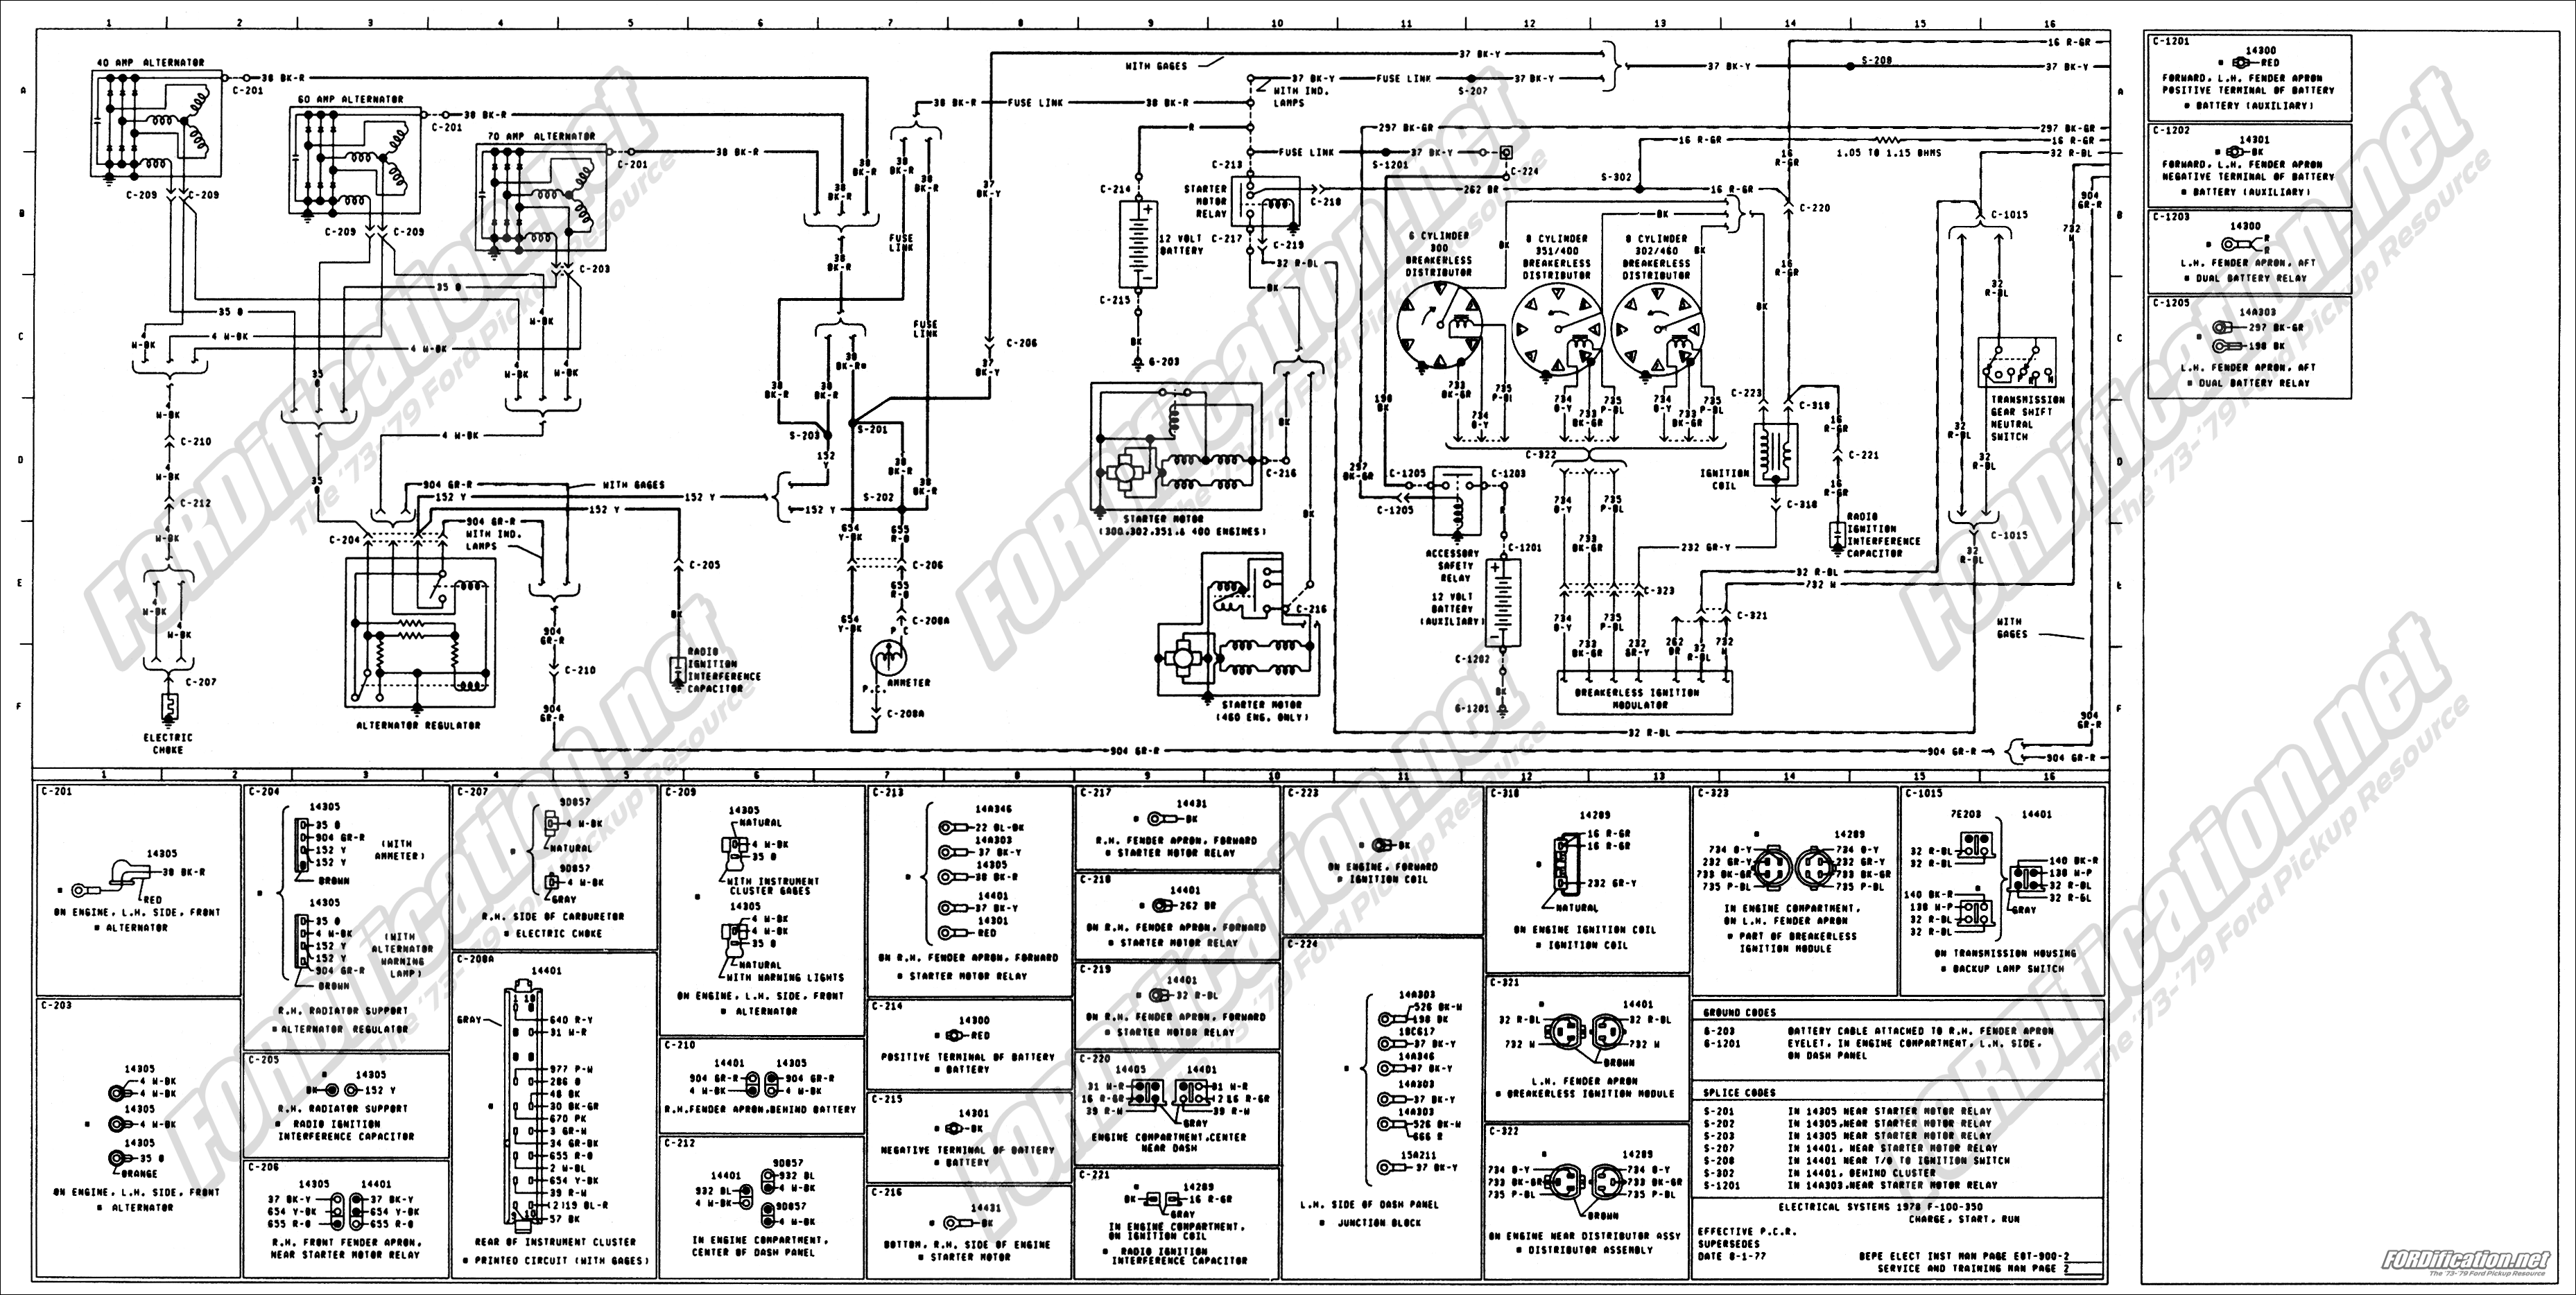 1996 ford f700 wiring diagram trusted wiring diagram rh dafpods co 1985 Ford  F700 1993 ford